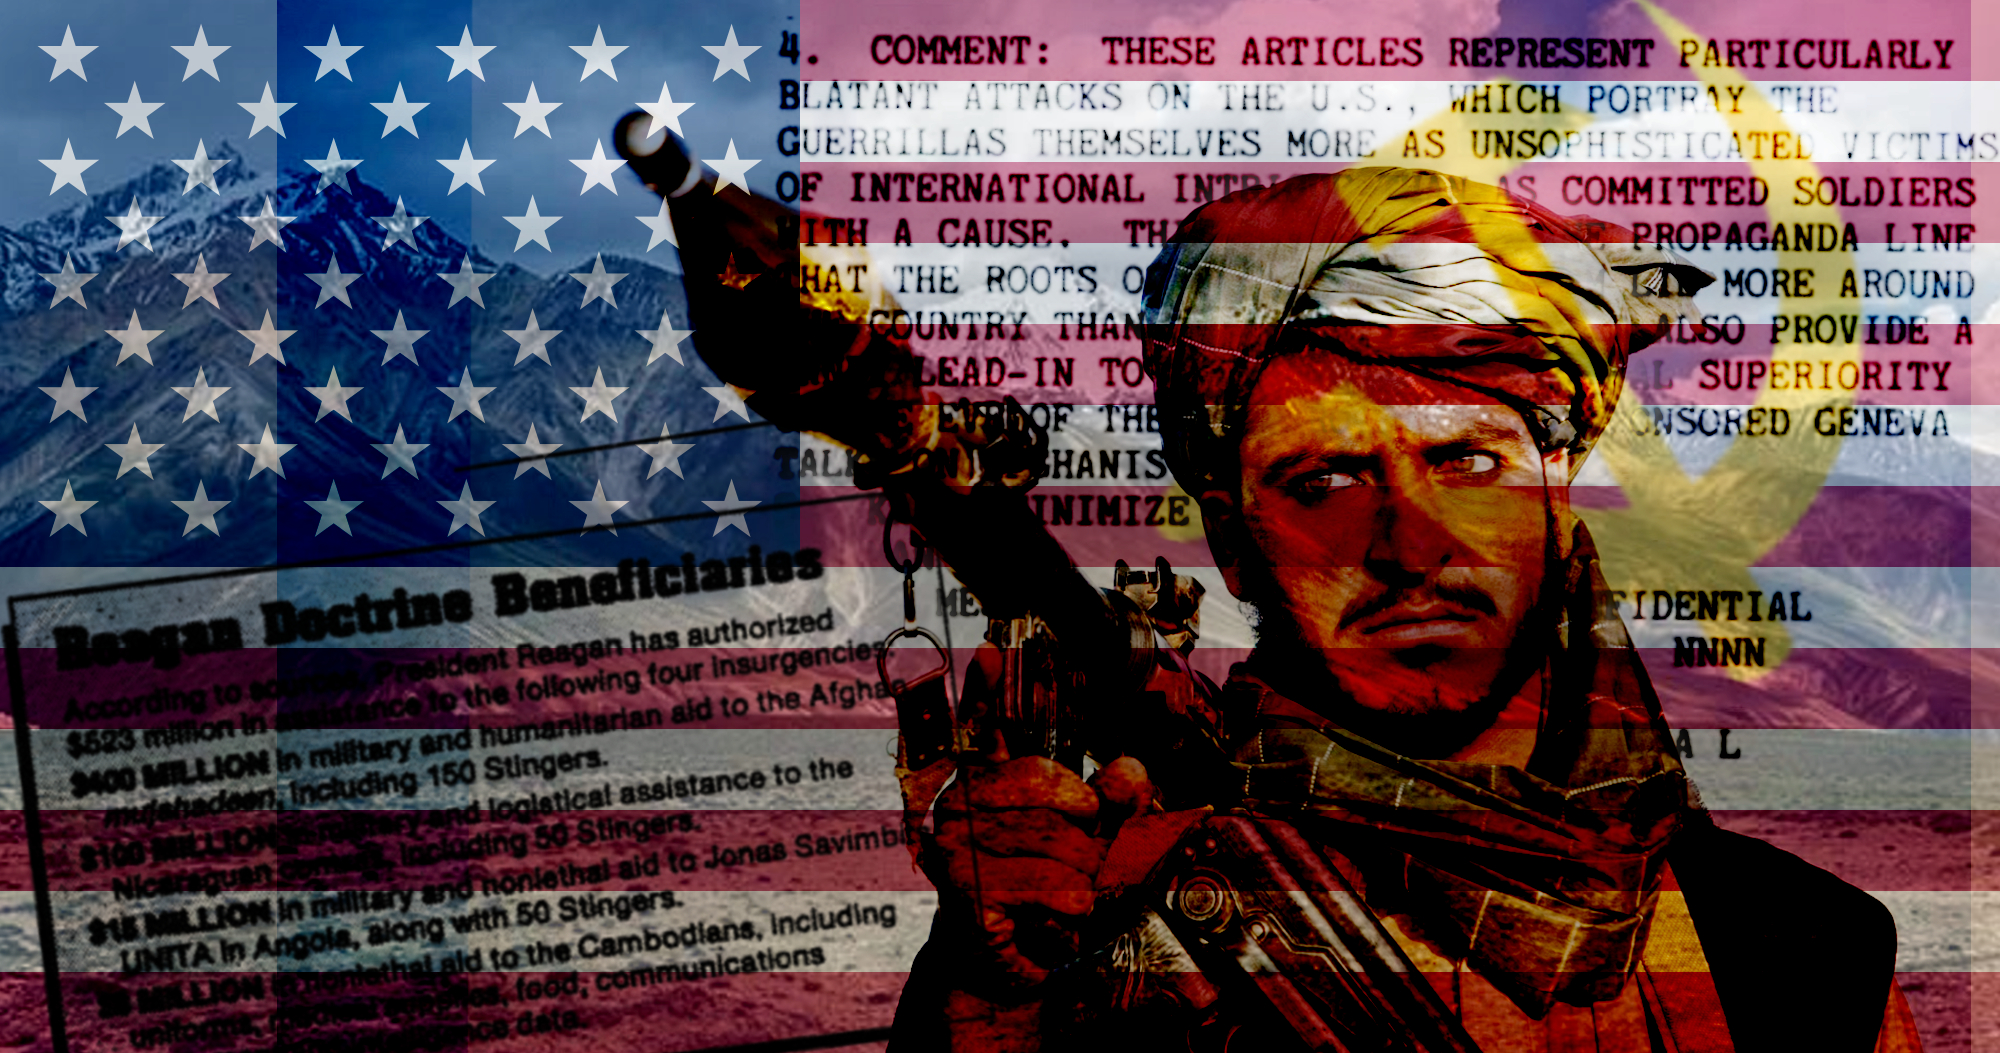 The never ending war in Afghanistan